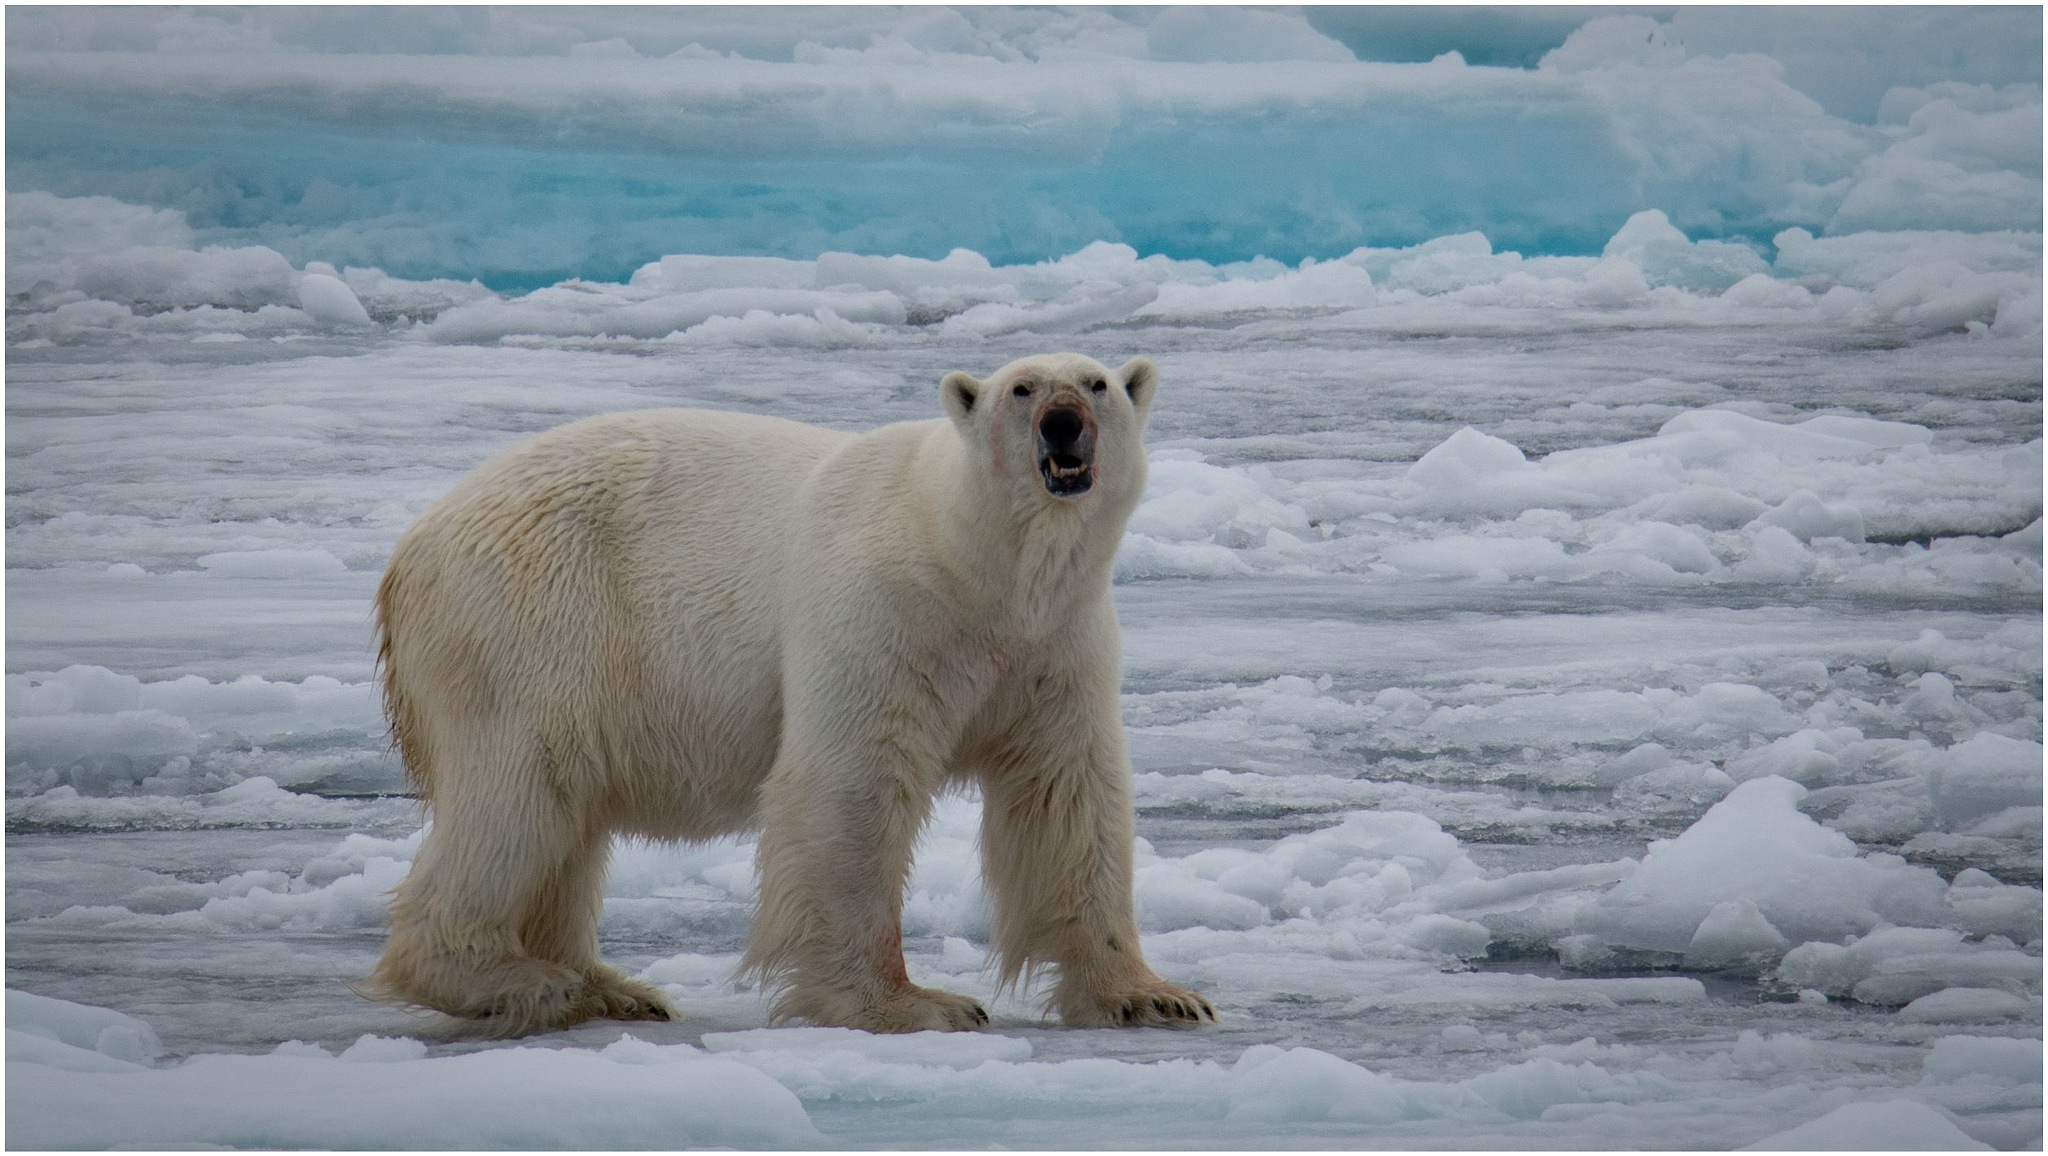 King of the Arctic by Dr. Ortwin Khan